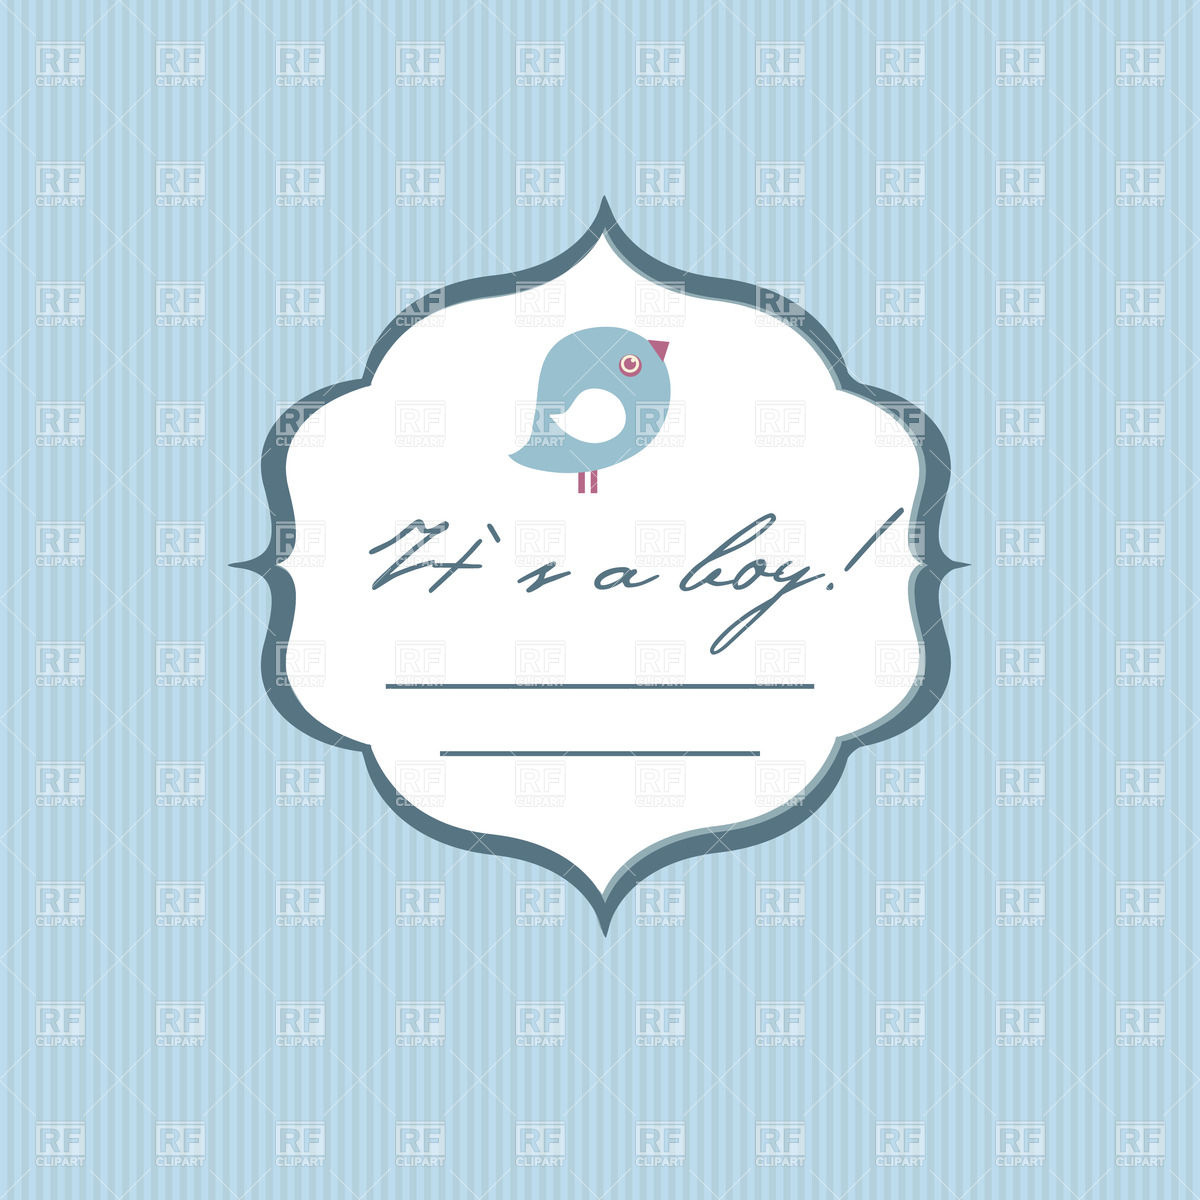 1200x1200 Baby Boy Birth Announcement Card With Cute Bird Vector Image